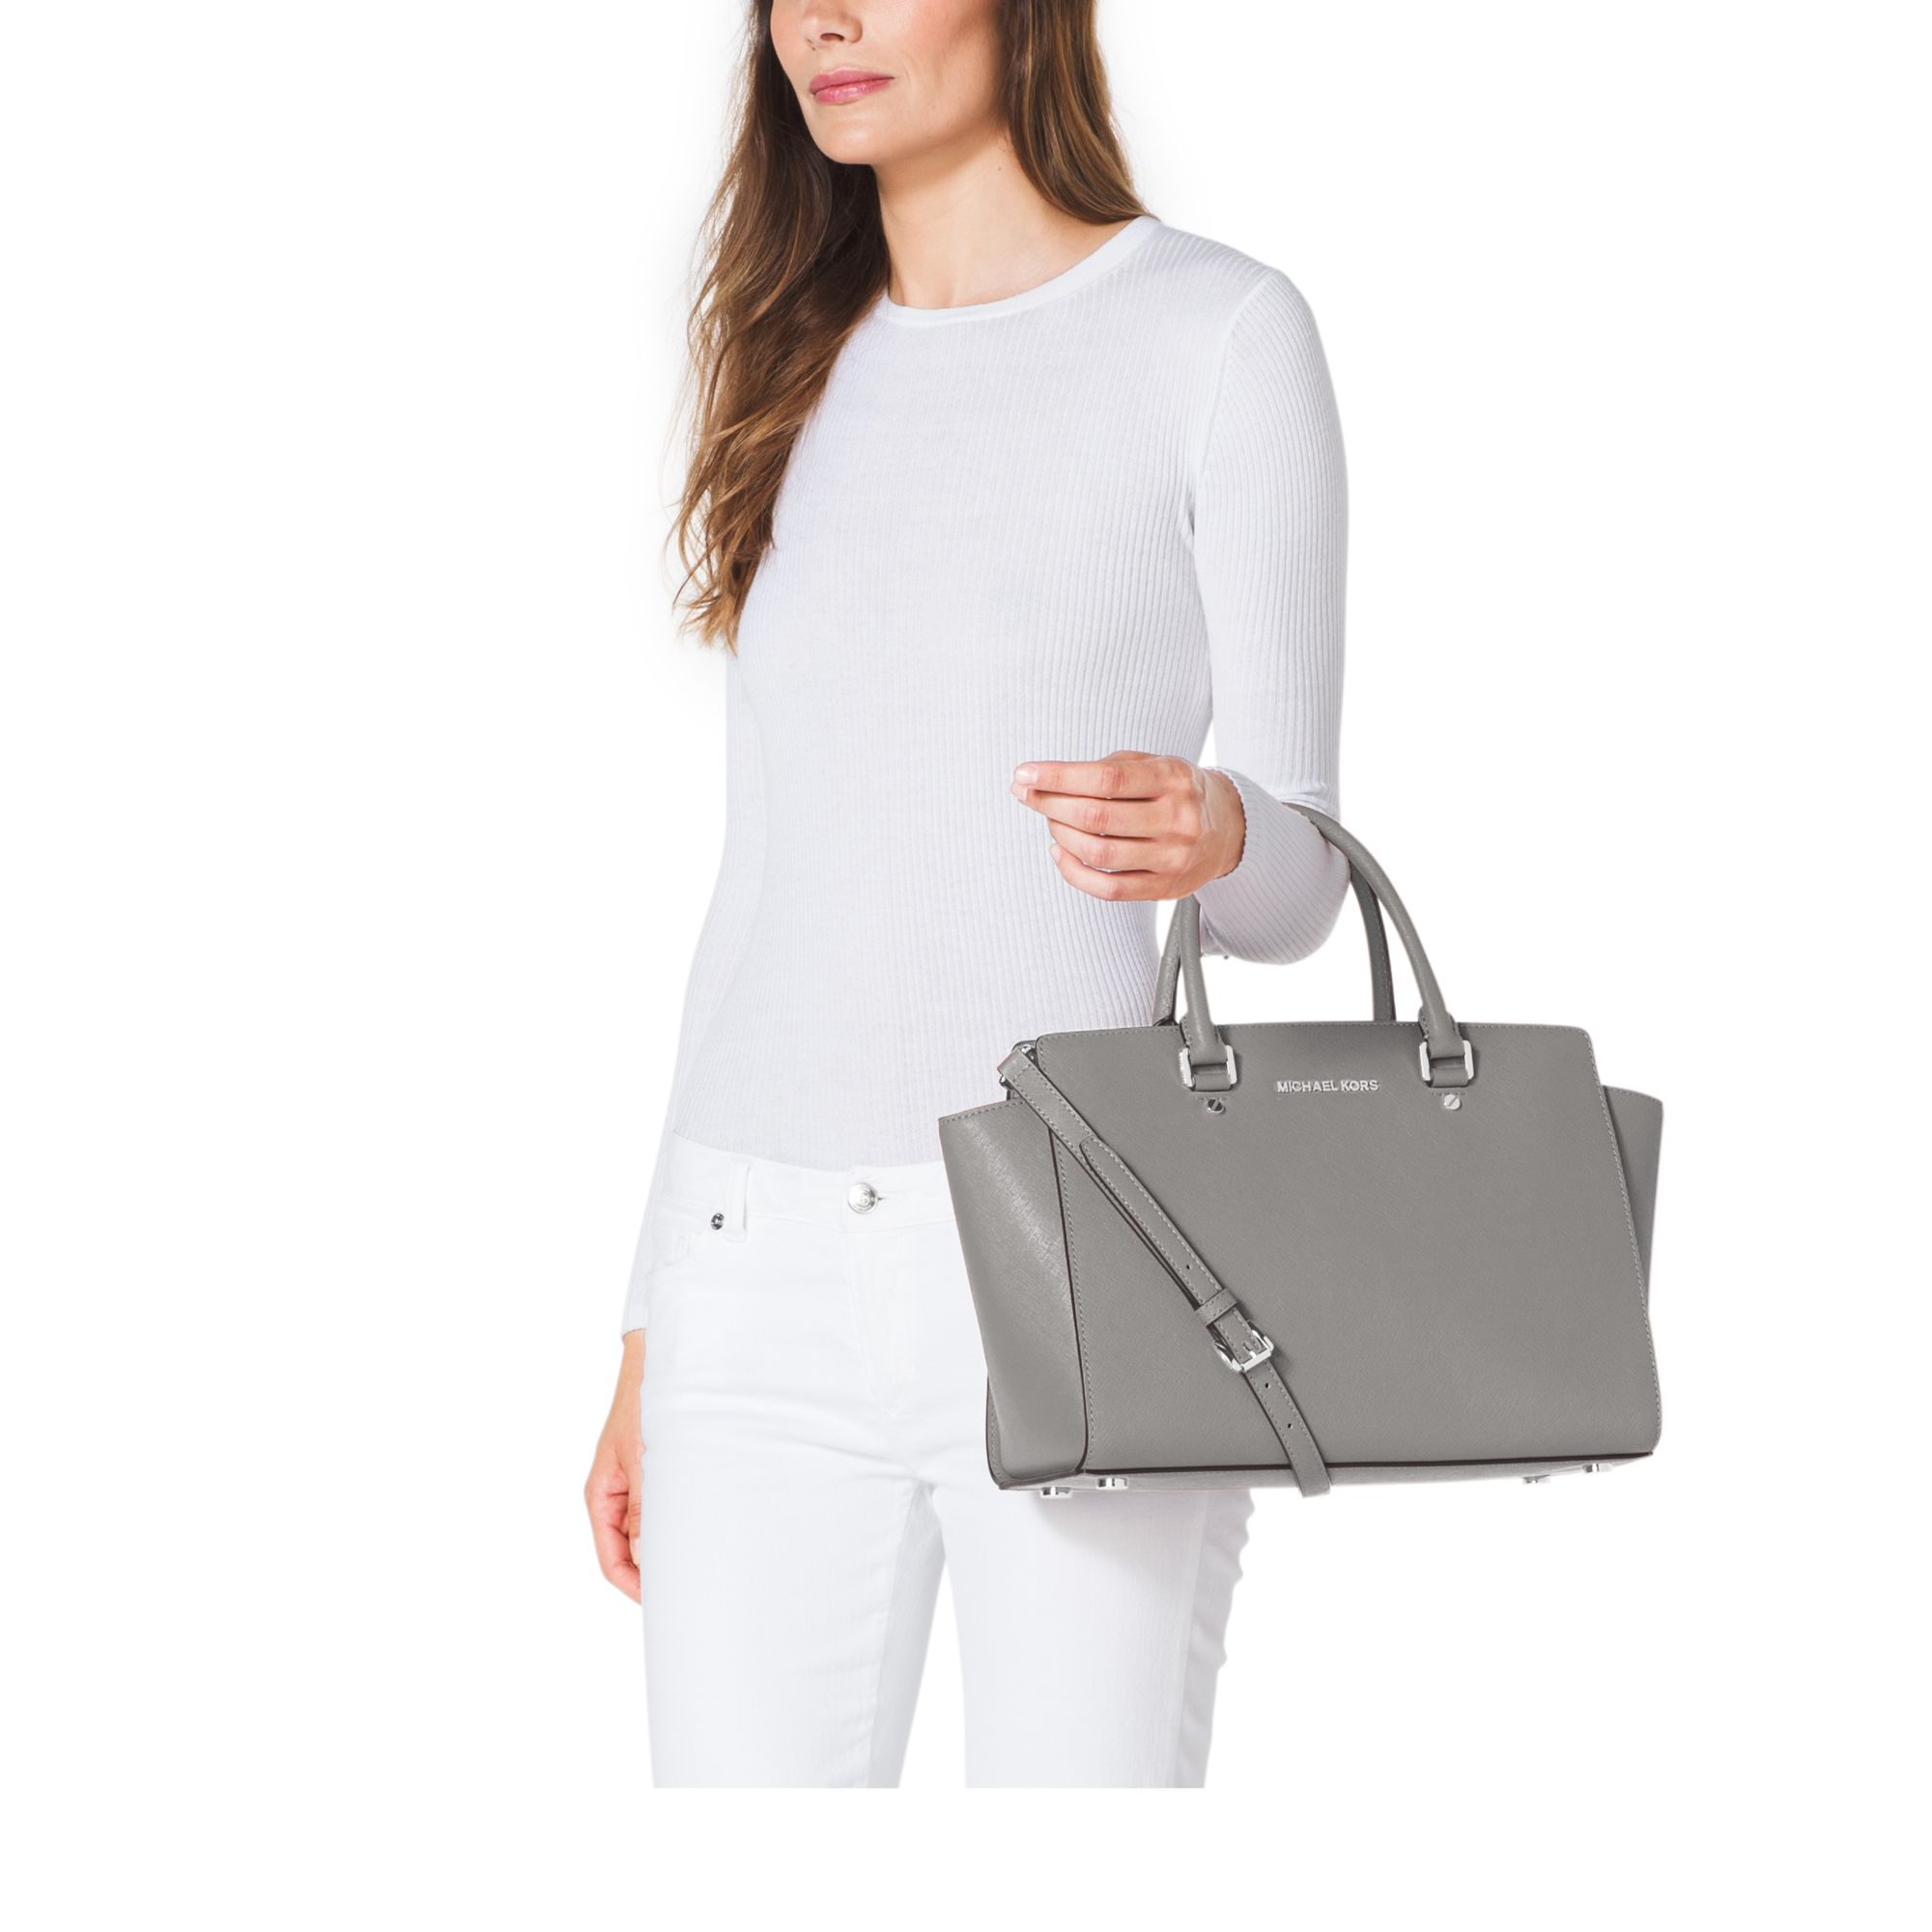 137cf76783d8 Michael Kors Selma Large Saffiano Leather Satchel in Gray - Lyst